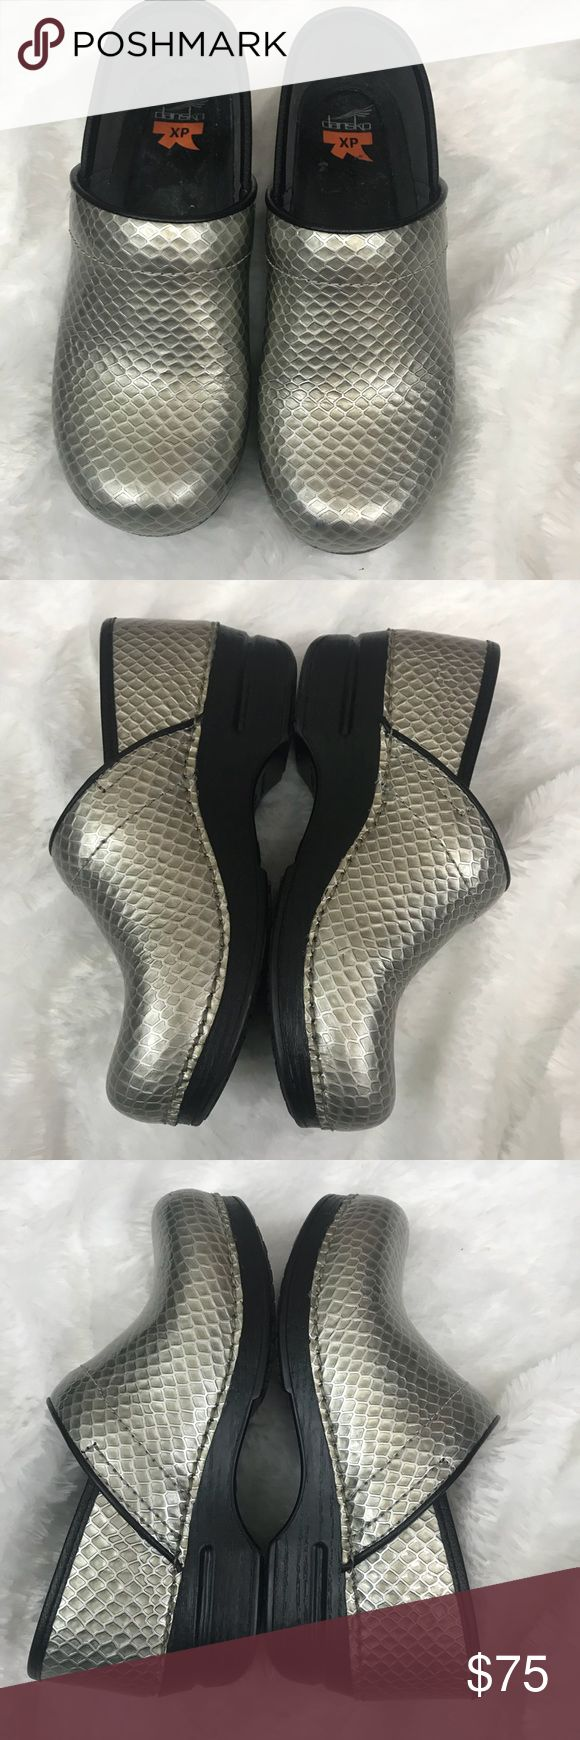 Dansko Clogs size 38 Silver Snake These Clogs are awesome! So comfortable!  Size 38 which is a women's 7.5-8 according to their size chart. Textured muted silver. A couple small scraps pictured. Soles shoe hardly any wear. Dansko Shoes Mules & Clogs